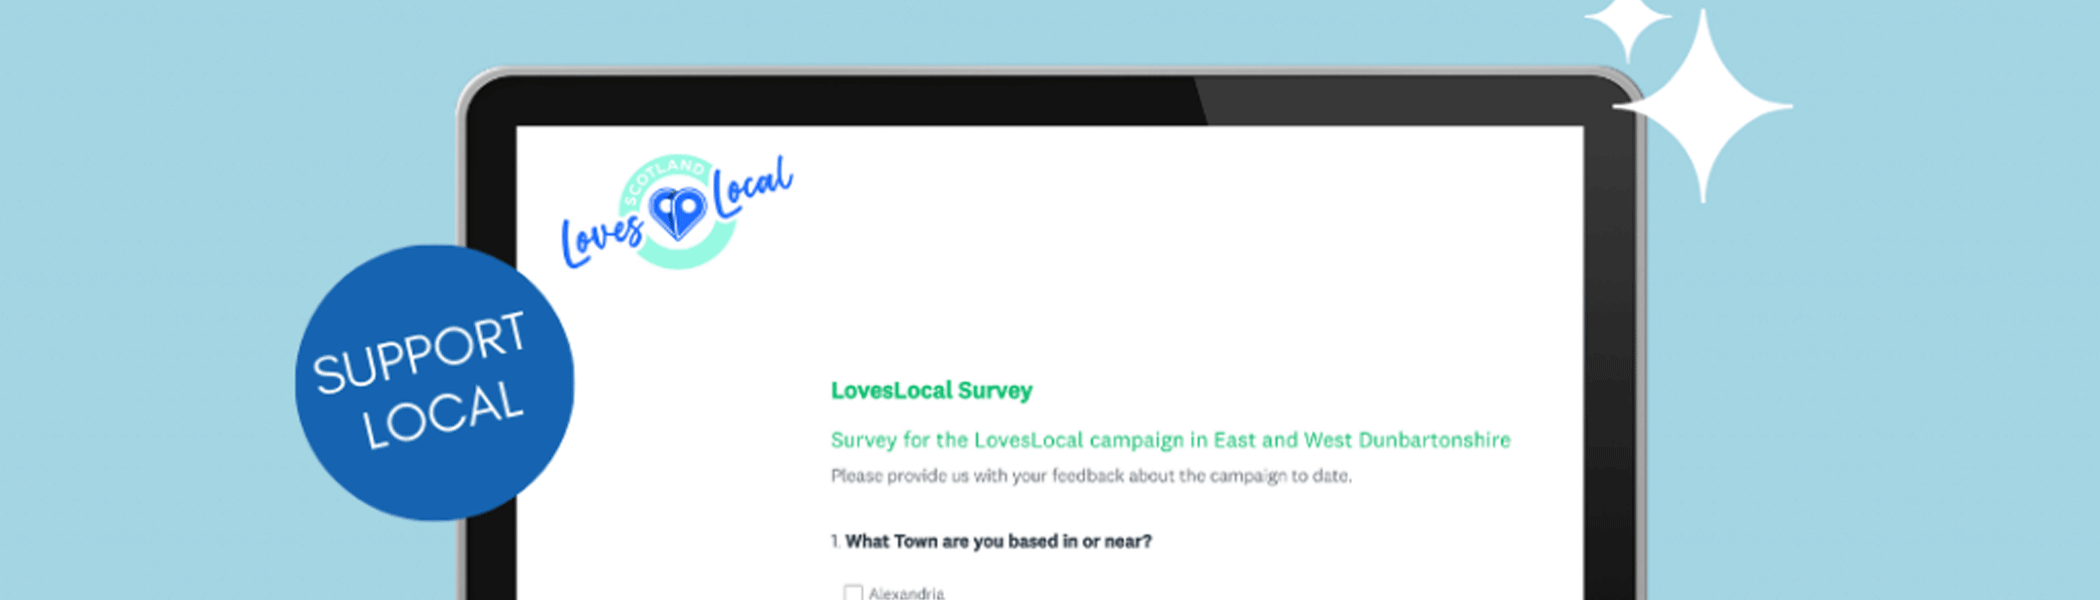 Loves Local Feedback survey